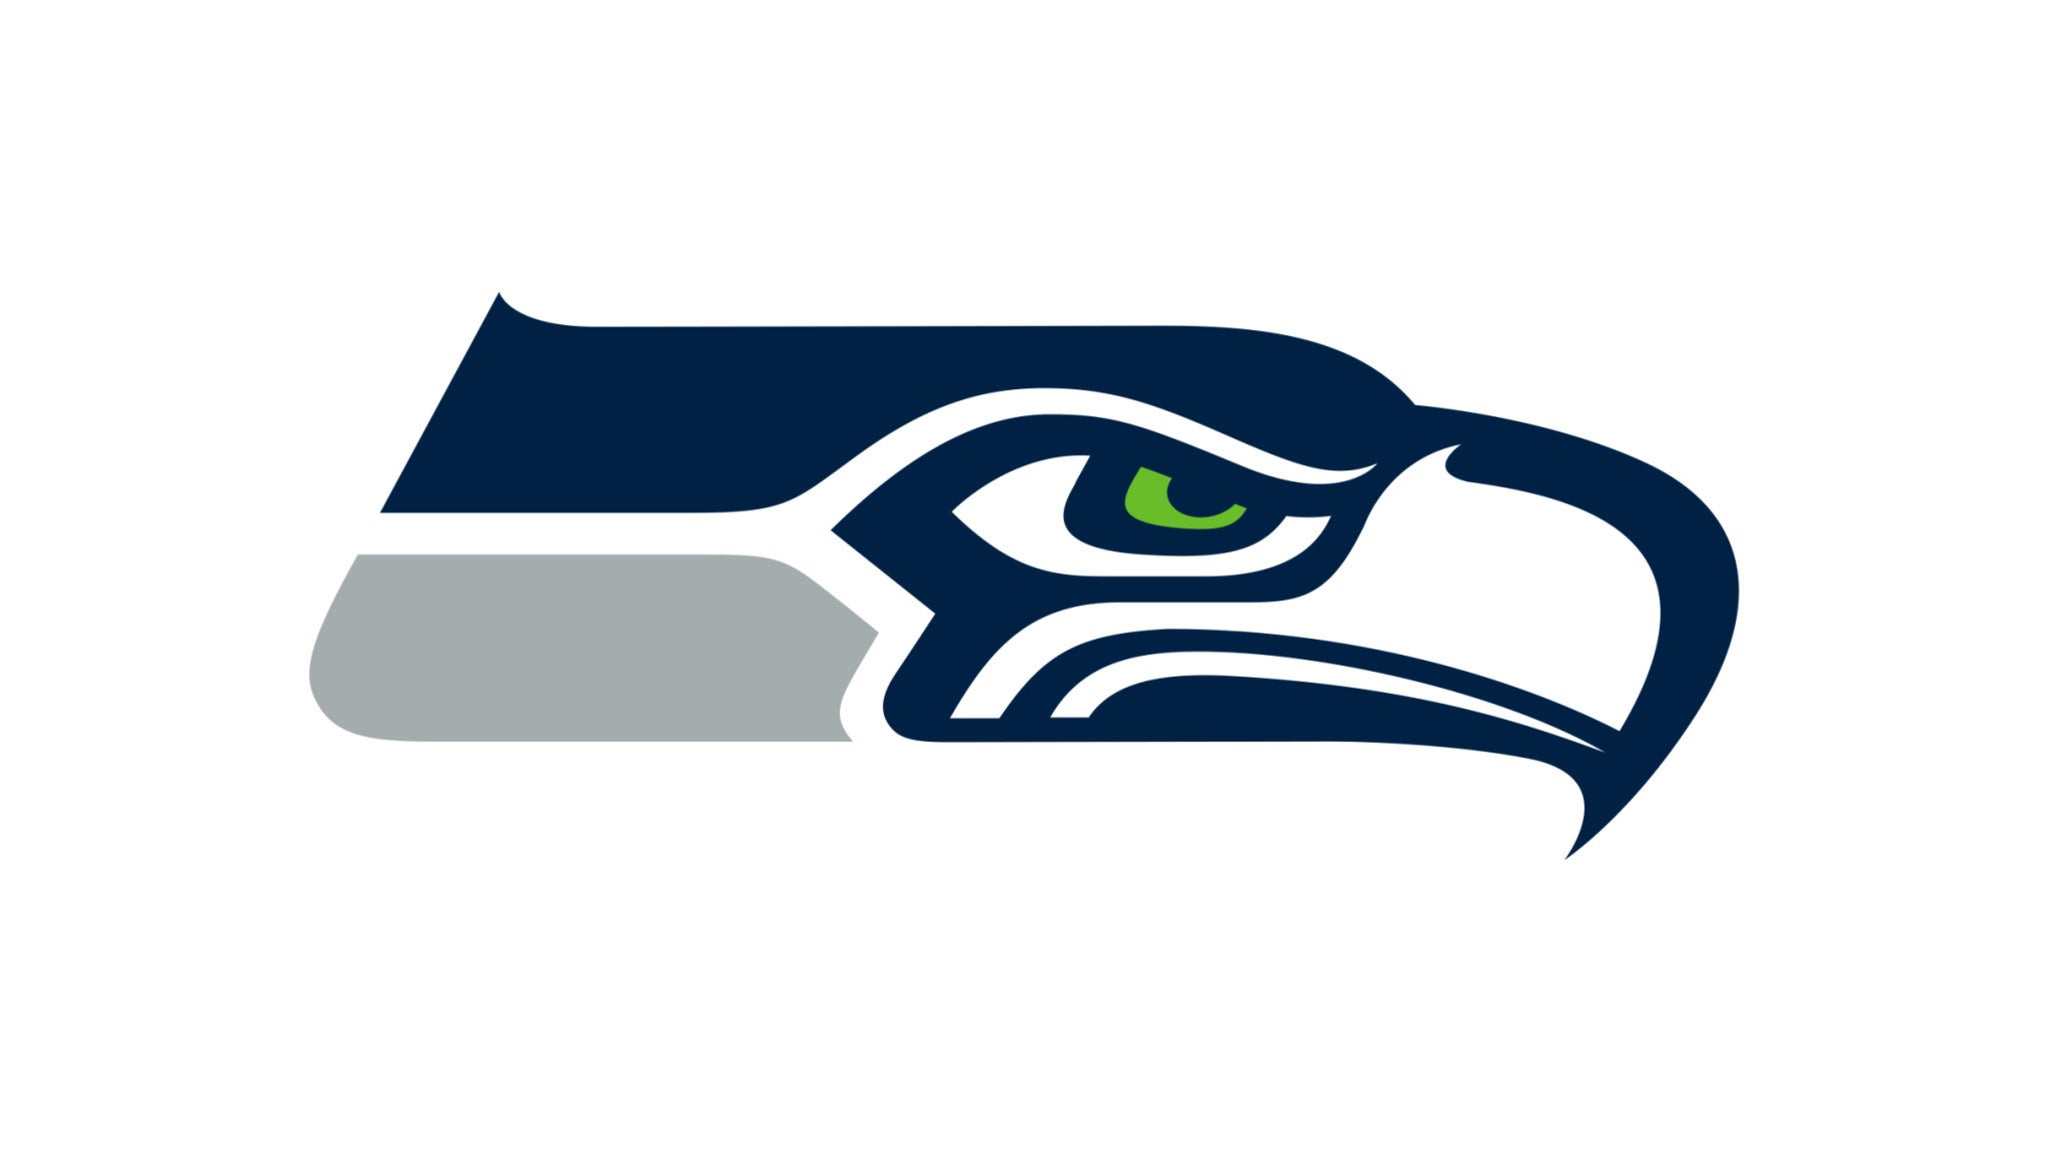 Seattle Seahawks vs. Atlanta Falcons at CenturyLink Field